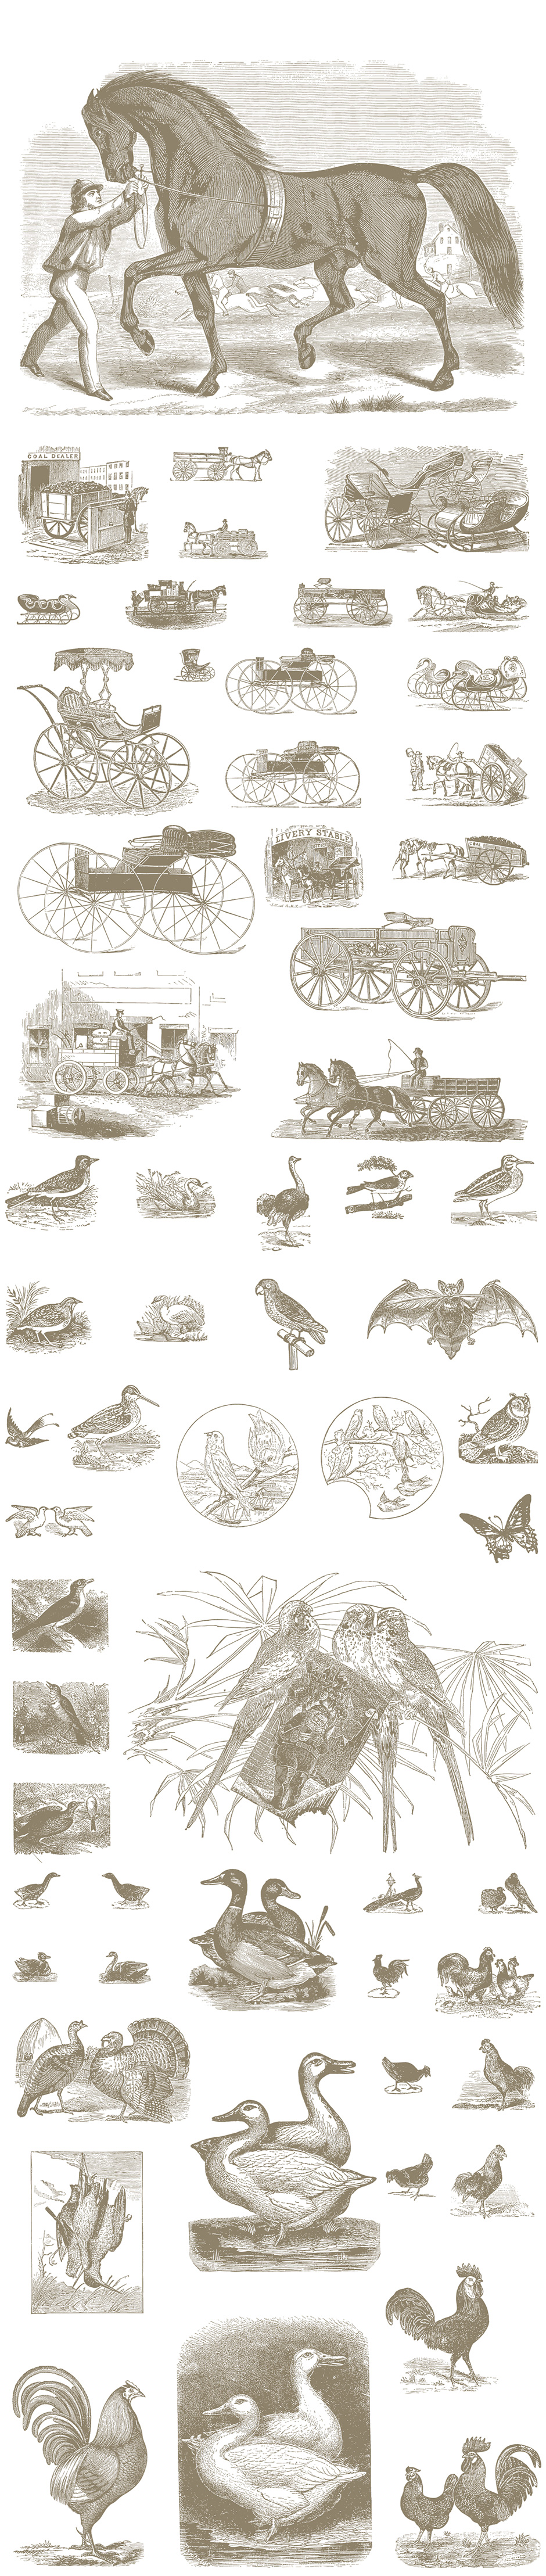 Illustrations Pack 2